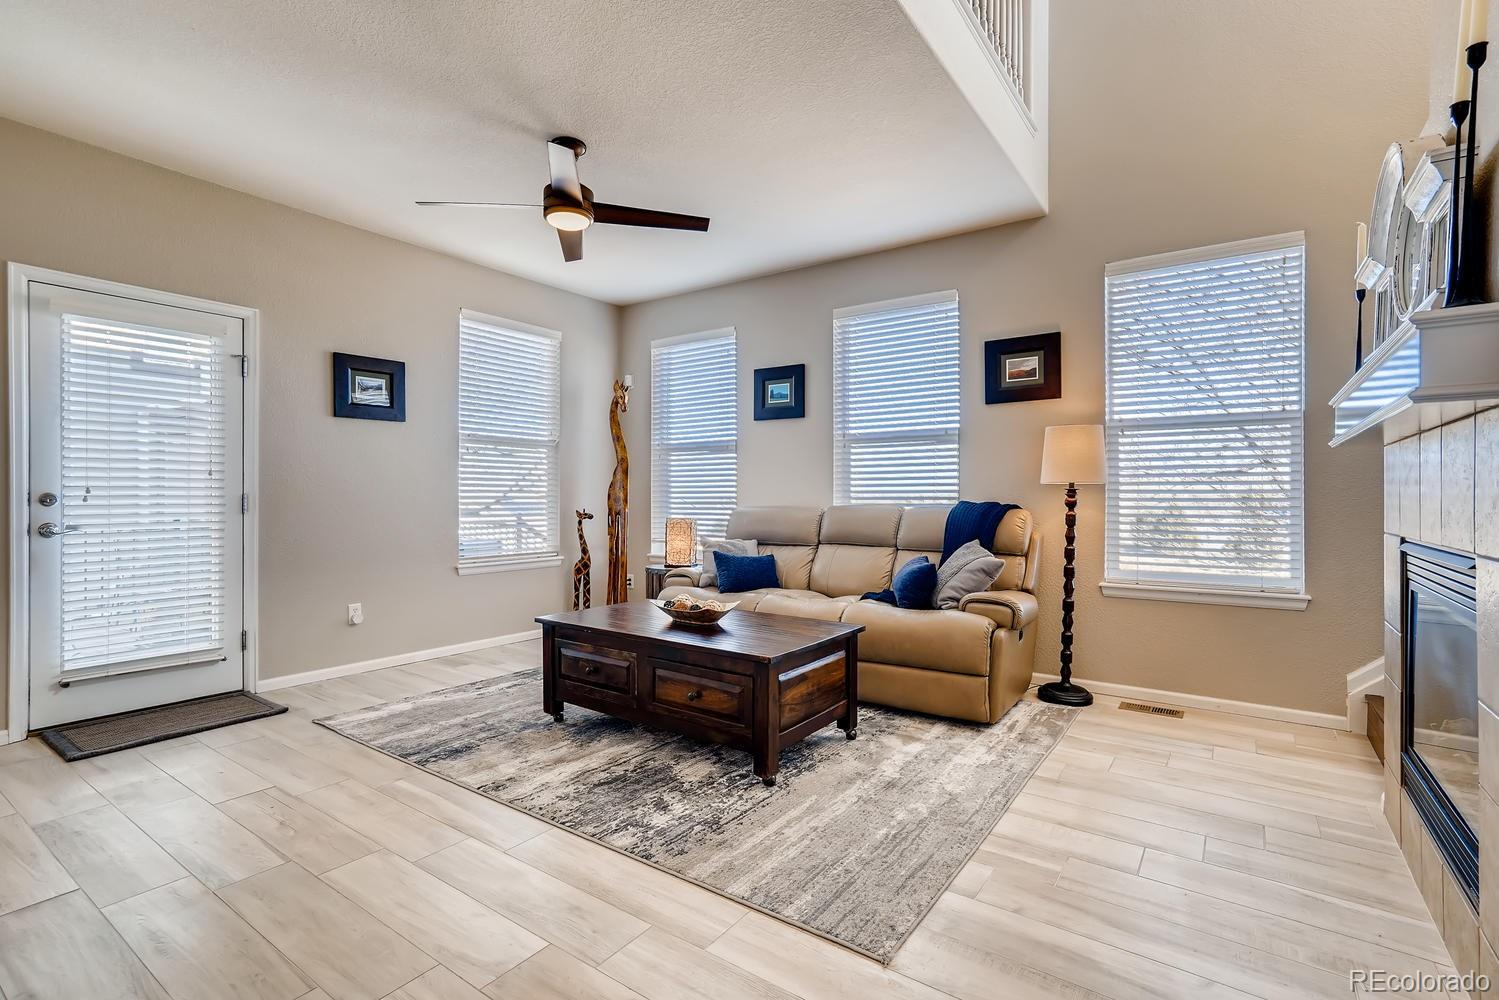 MLS# 8227370 - 8 - 10562 Atwood Circle, Highlands Ranch, CO 80130